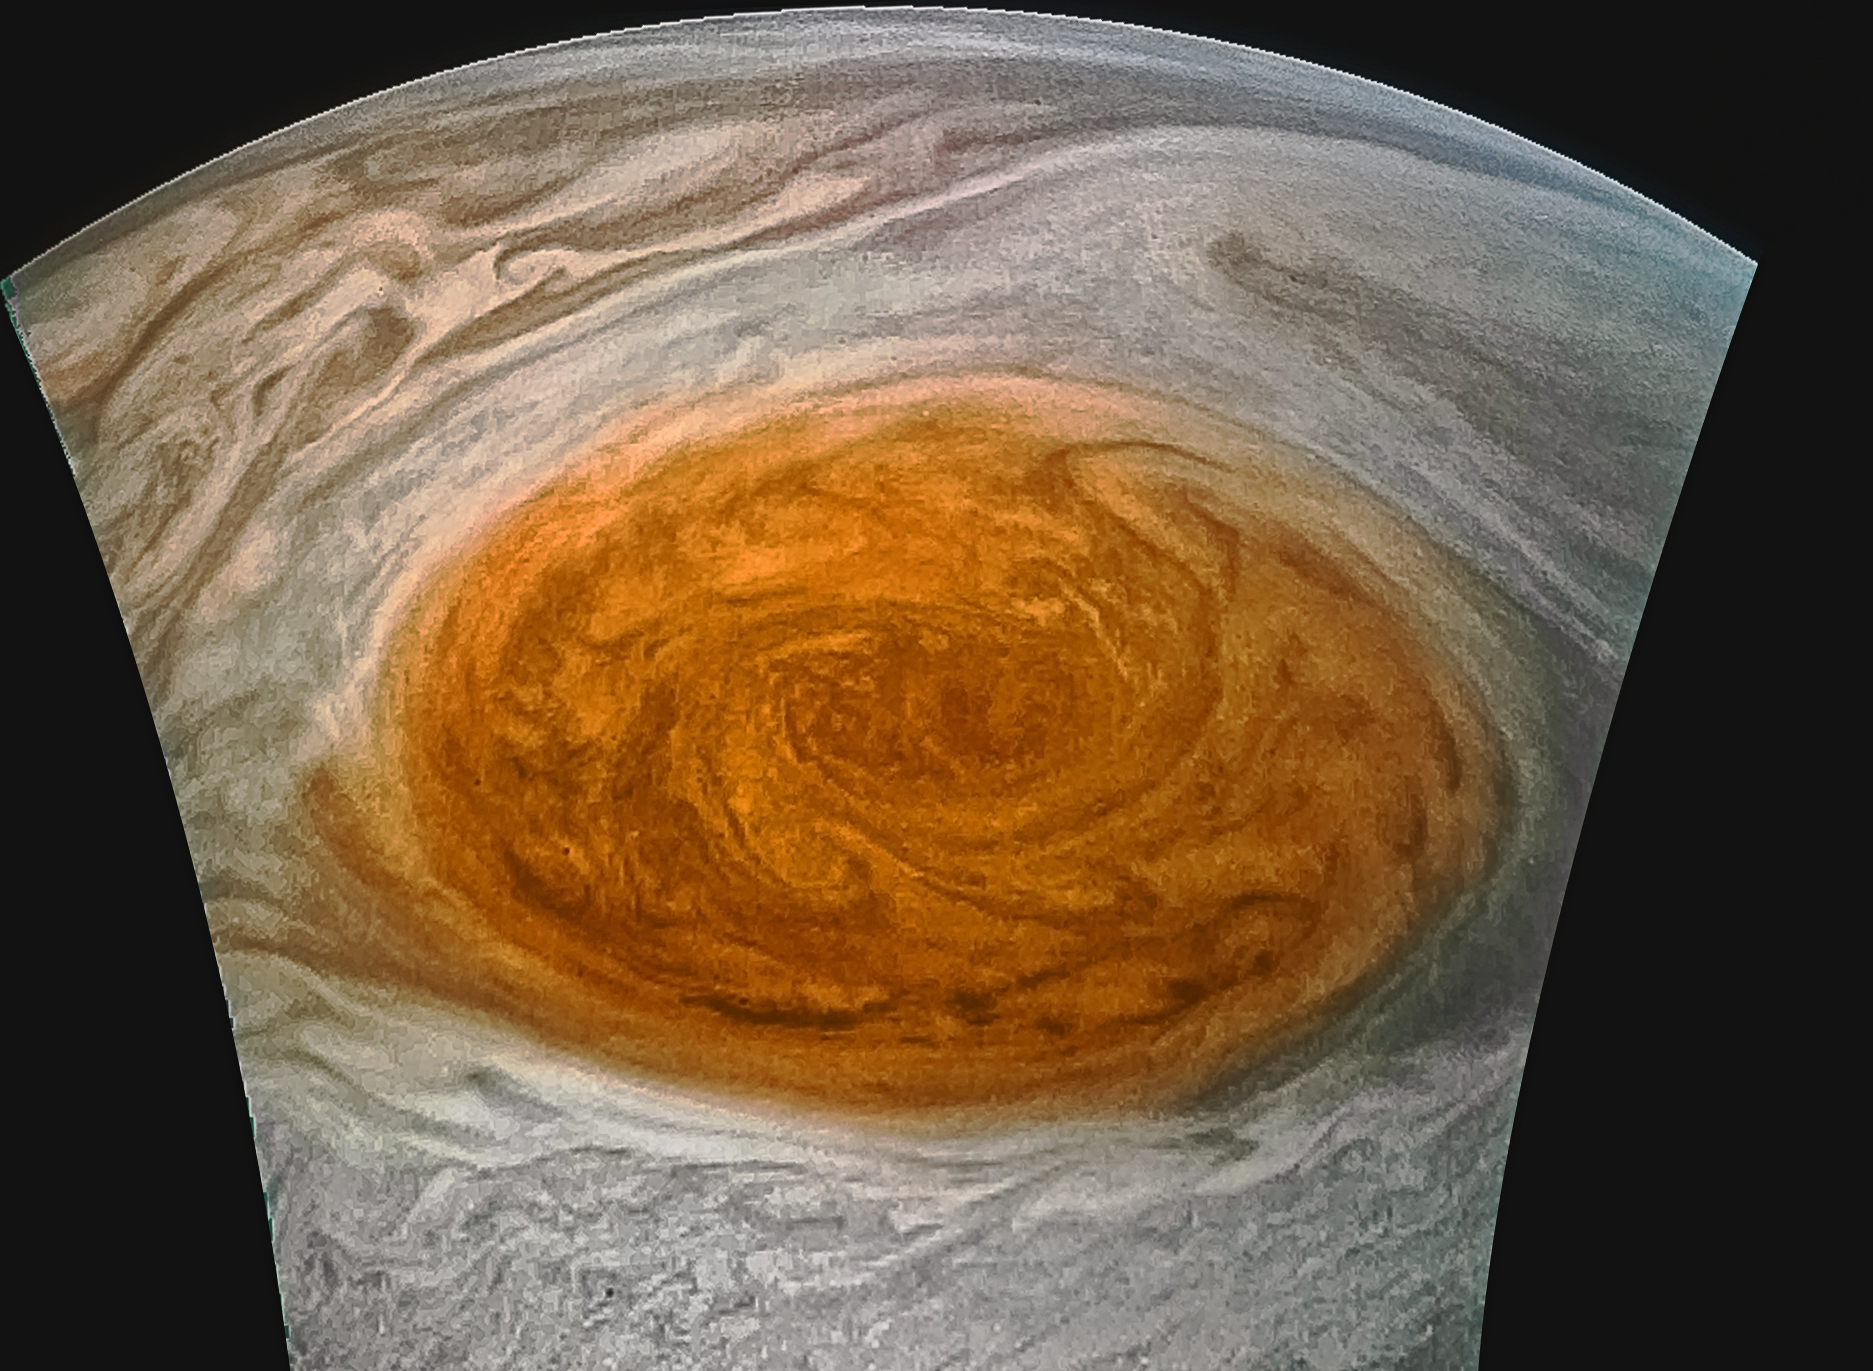 NASA shares 'humanity's first up-close' view of Jupiter's large storm